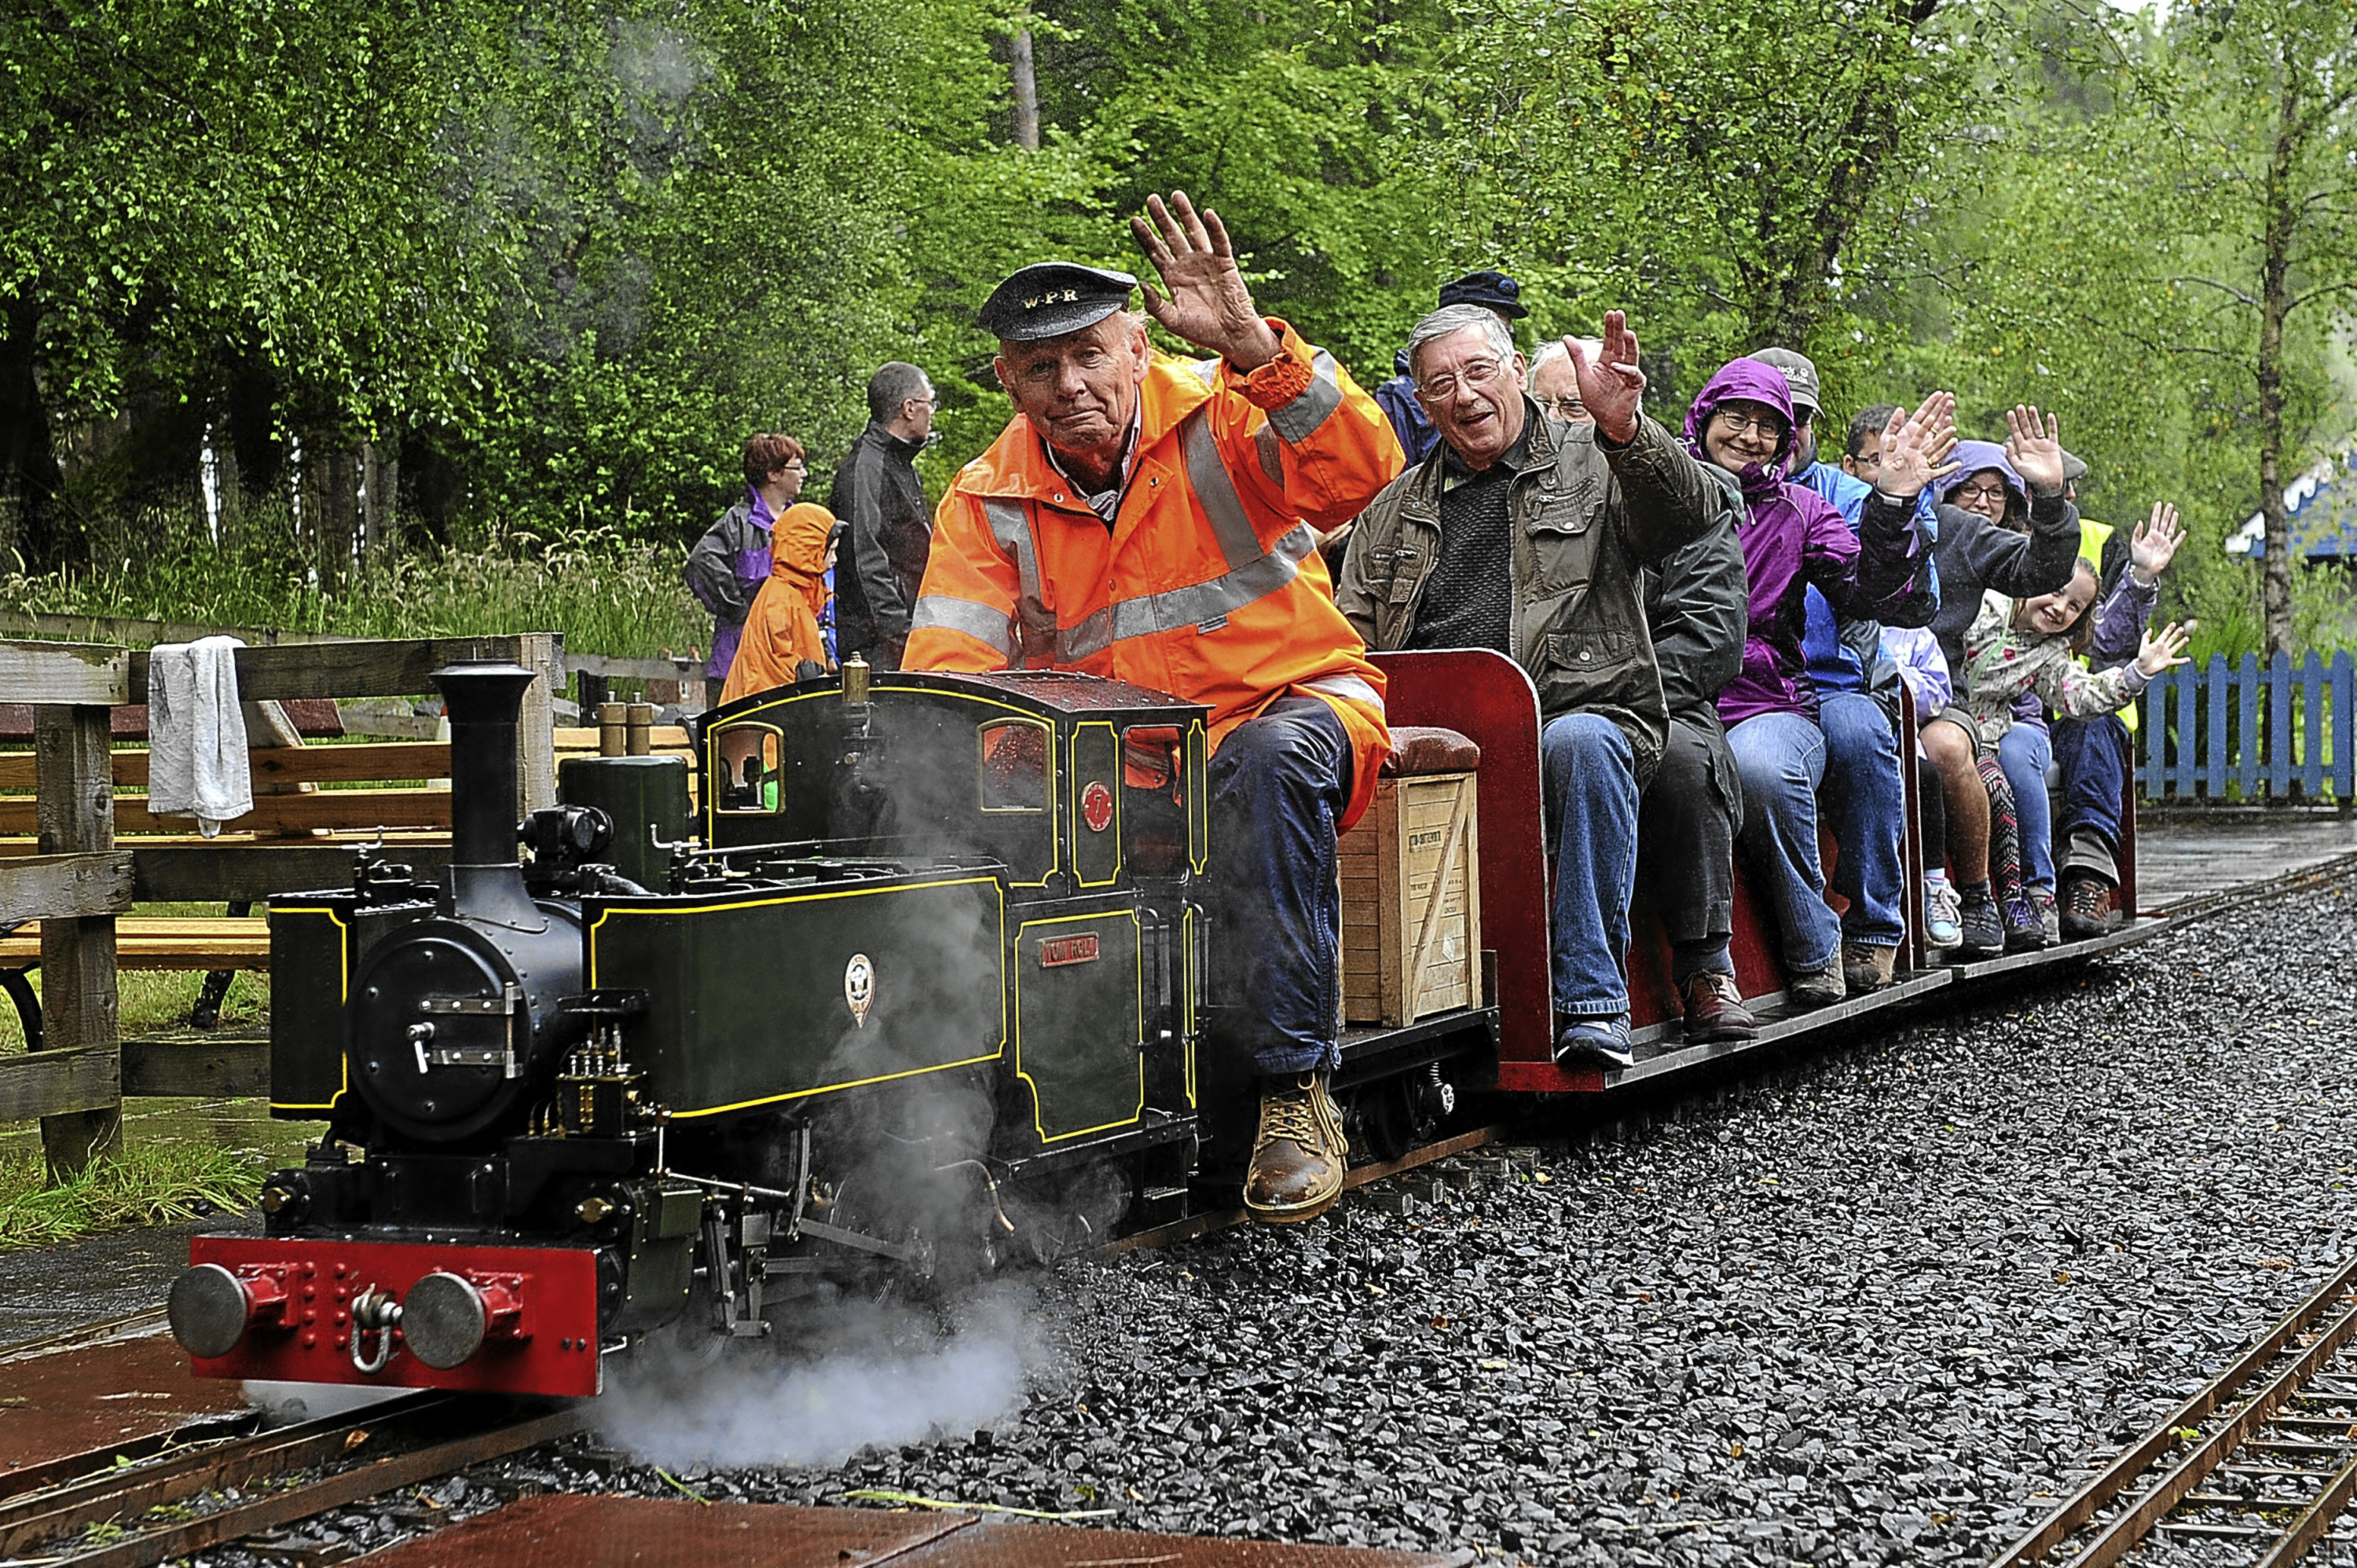 Journeys on the steam trains have previously proved popular at the Trusts open day at Wester Pickston Railway, Glenalmond.